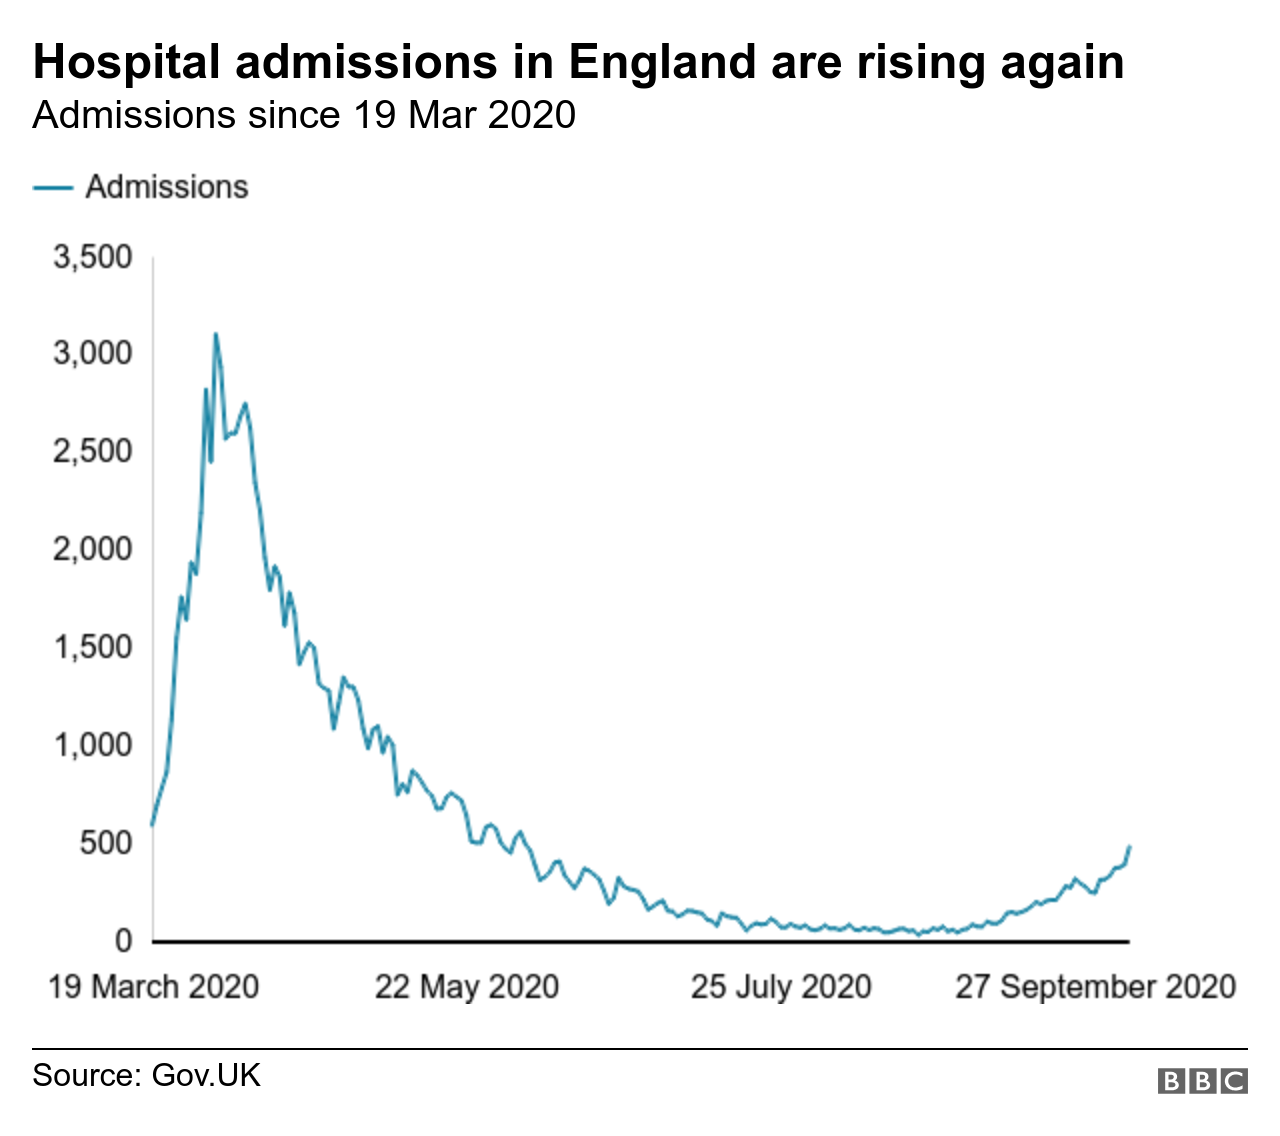 Hospital admissions in England are rising again